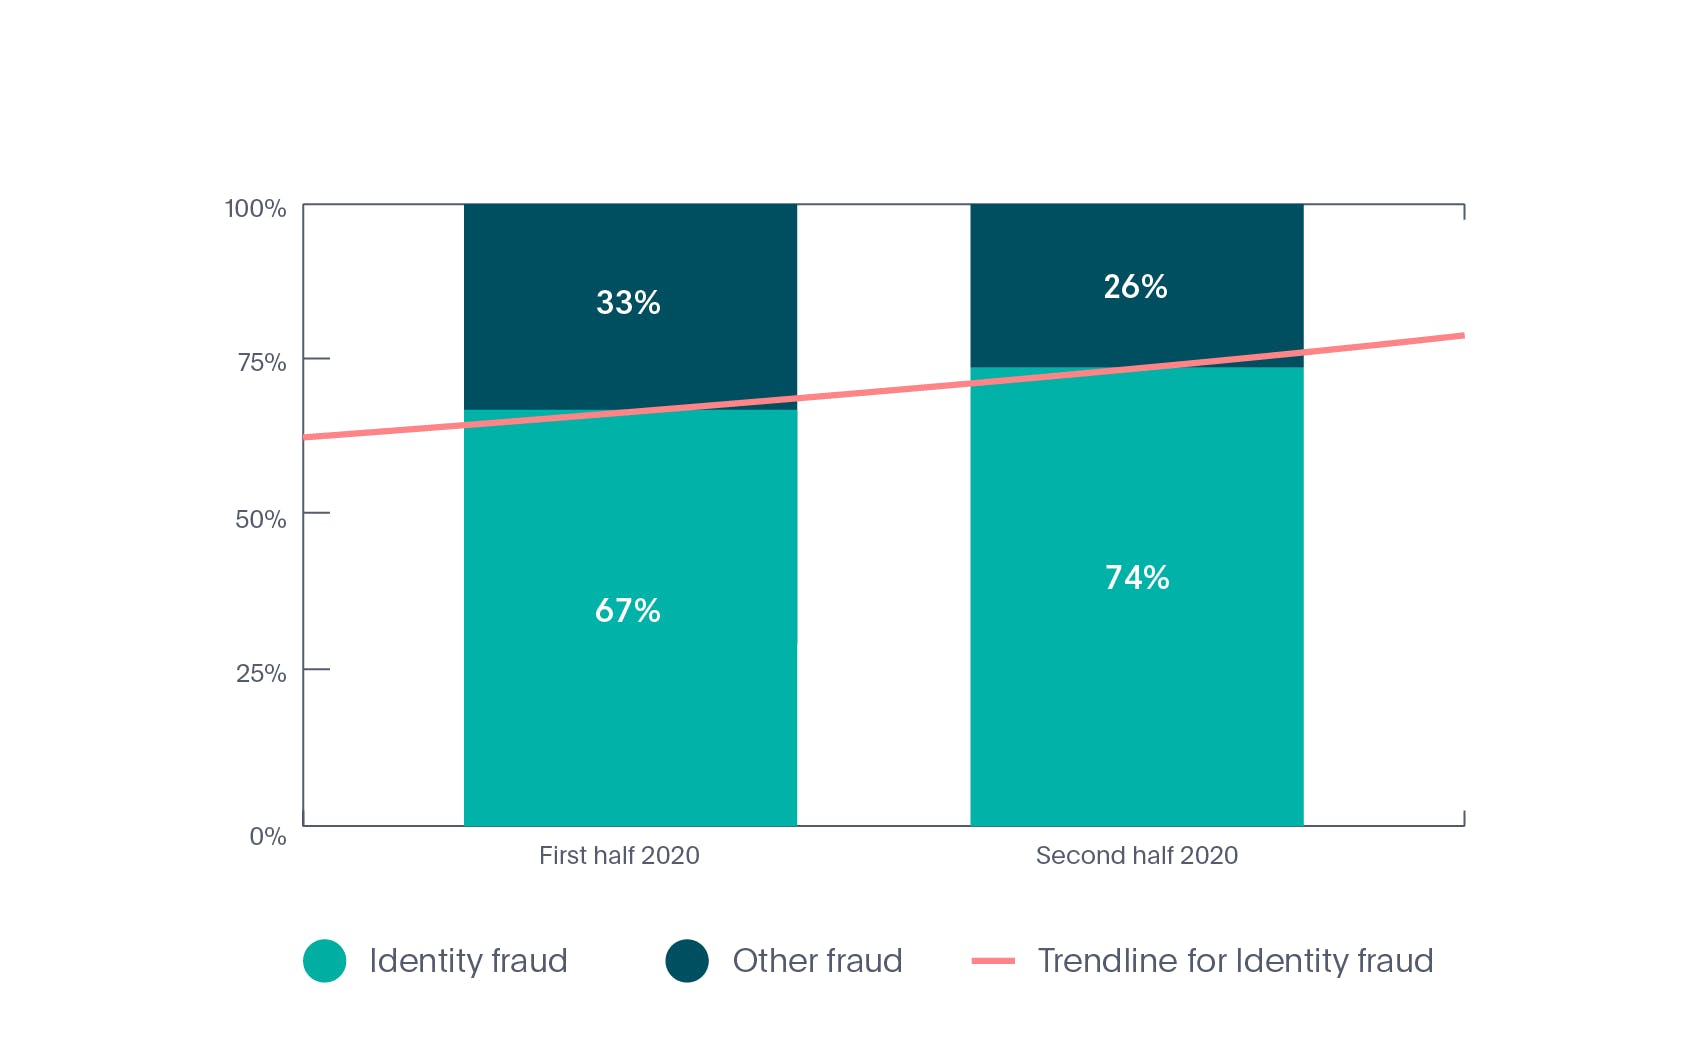 Online identity fraud rate in Fintech industry in 2020